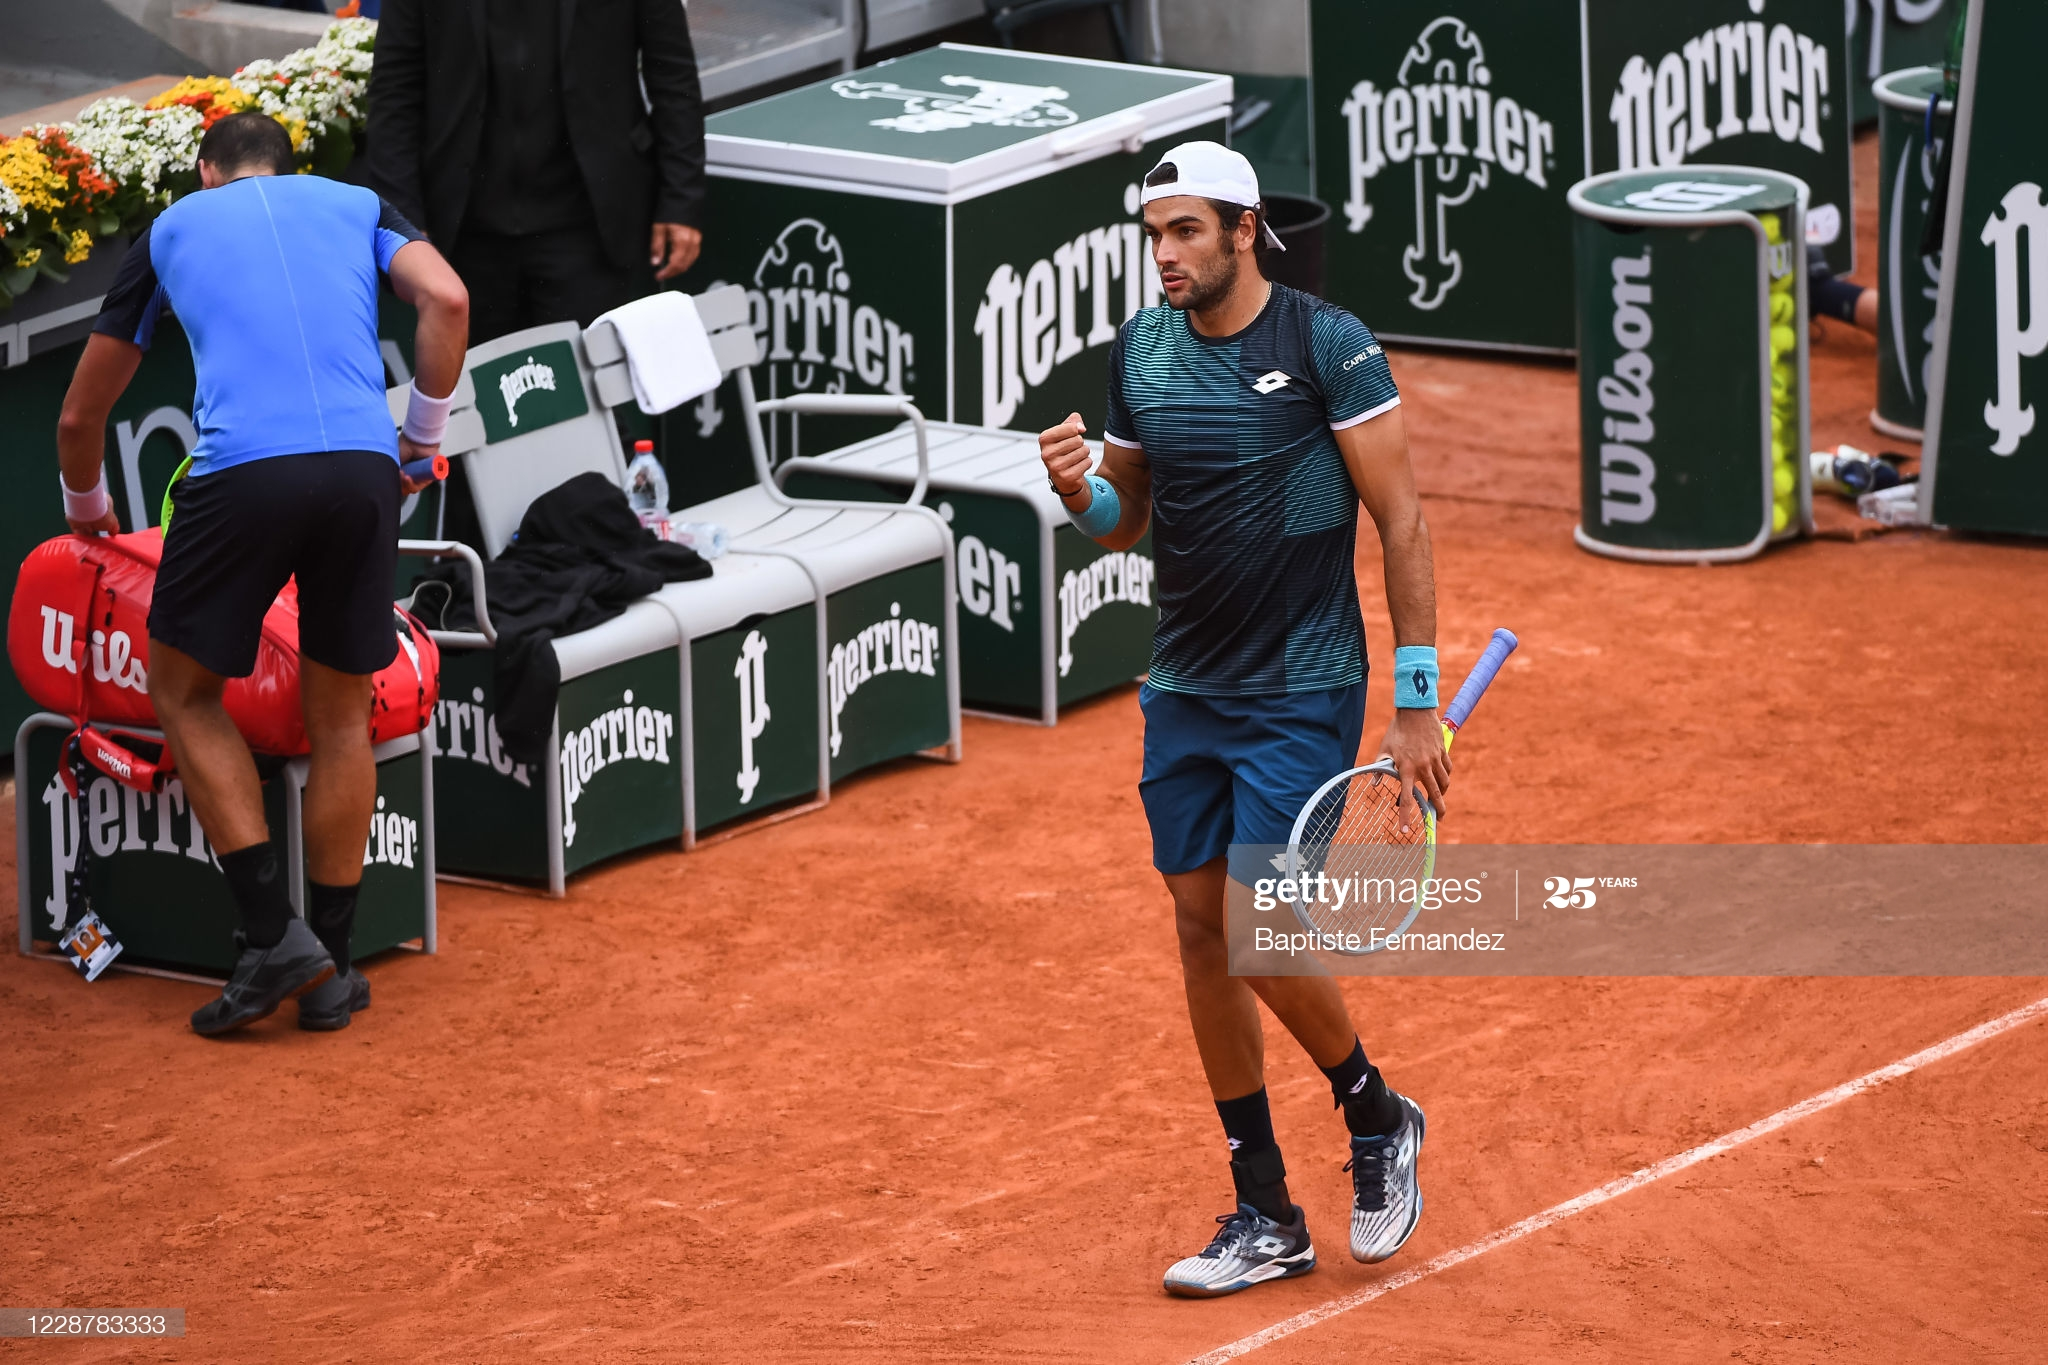 berrettini day 3 french open 2020